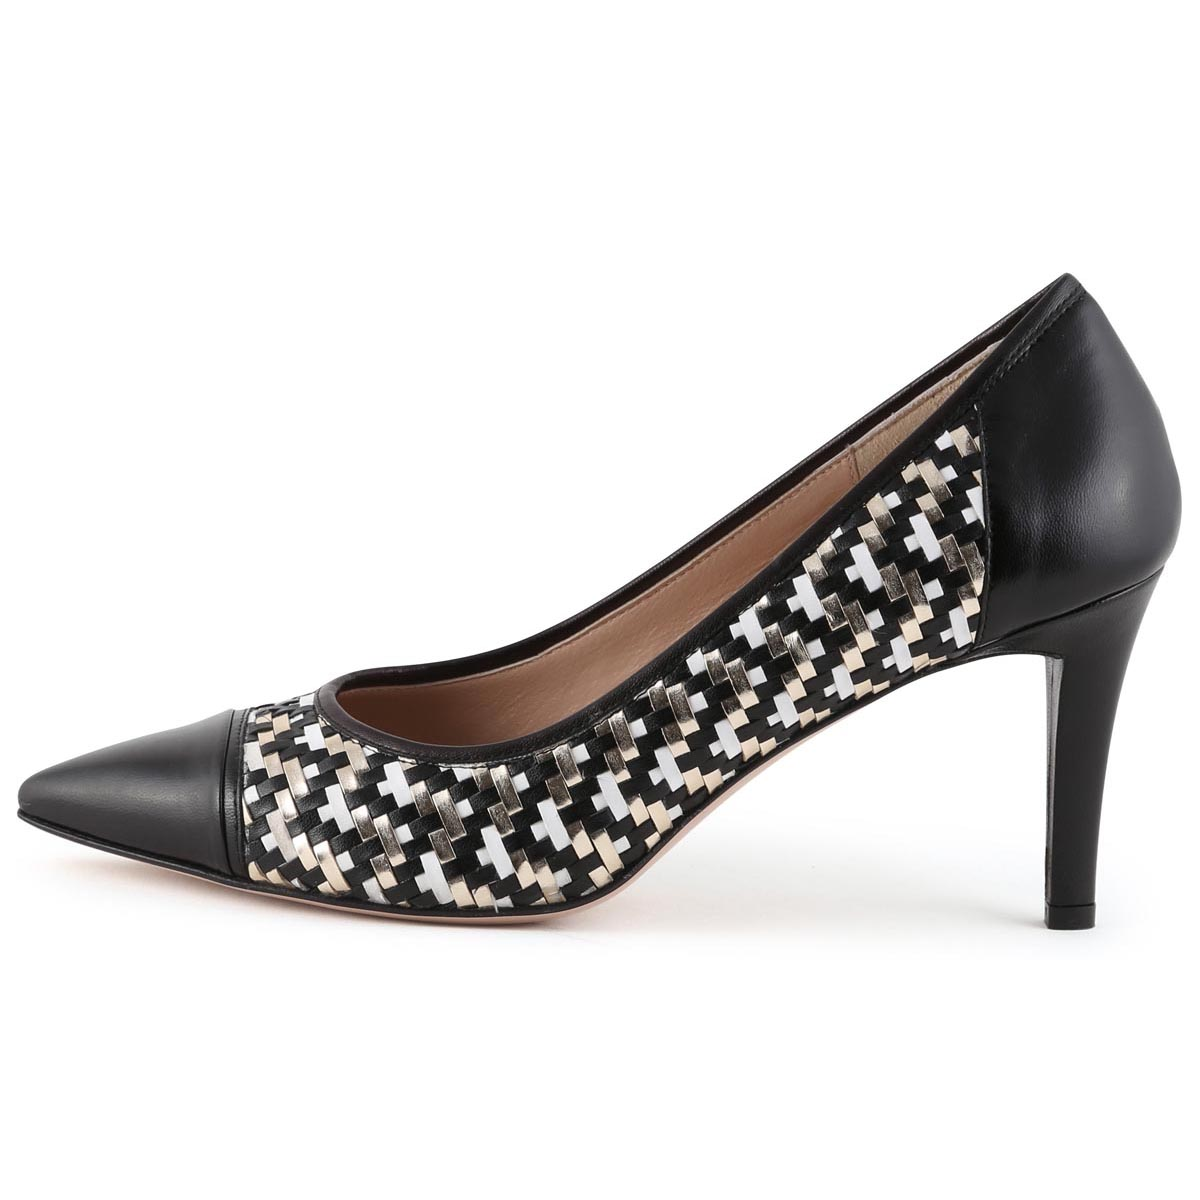 Nigella - Renata Black and Gold Occasion Shoe